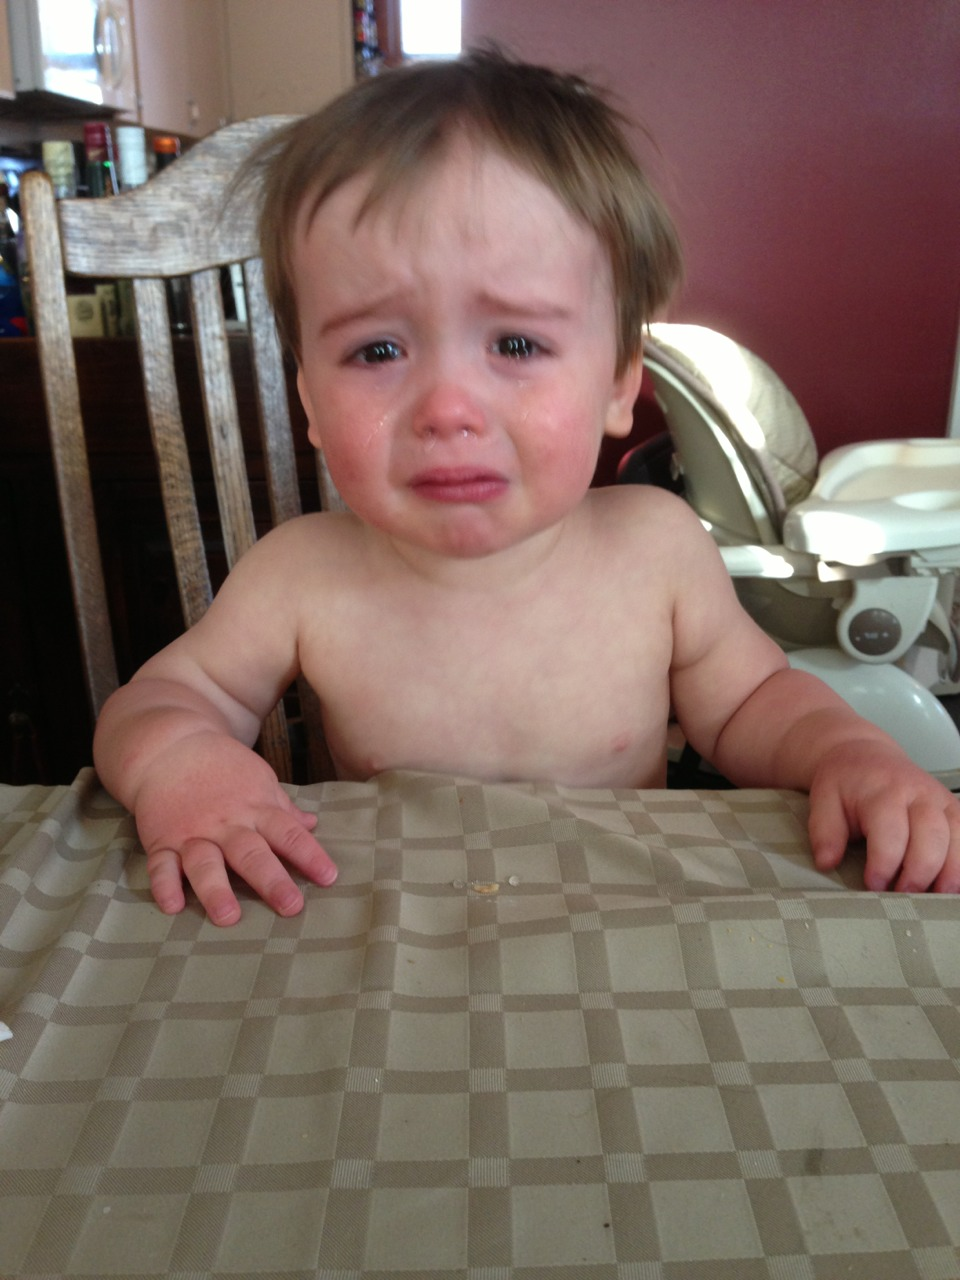 I have no idea why my son is crying.